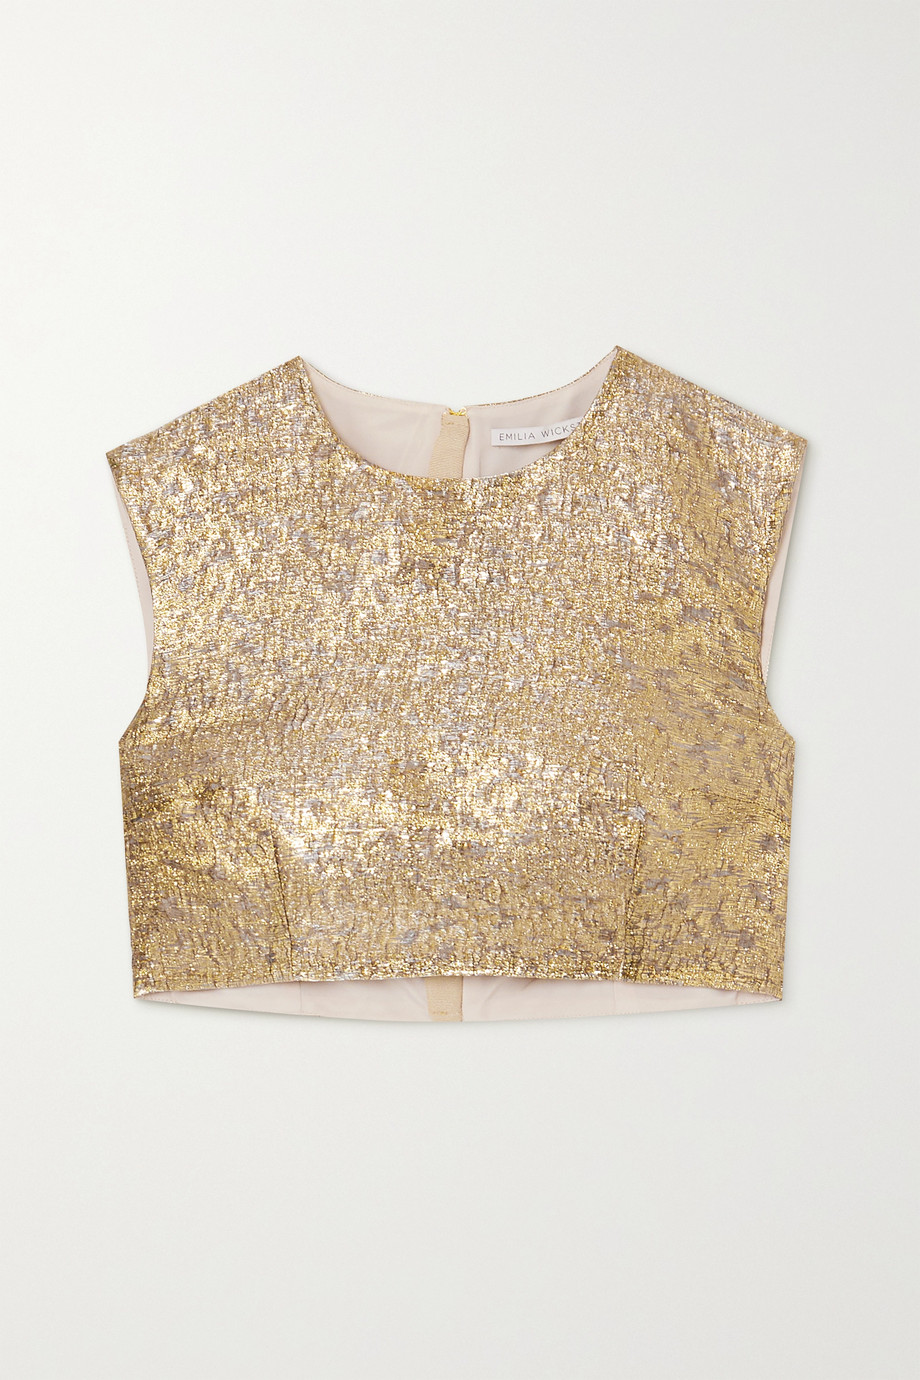 Emilia Wickstead Cropped lamé top